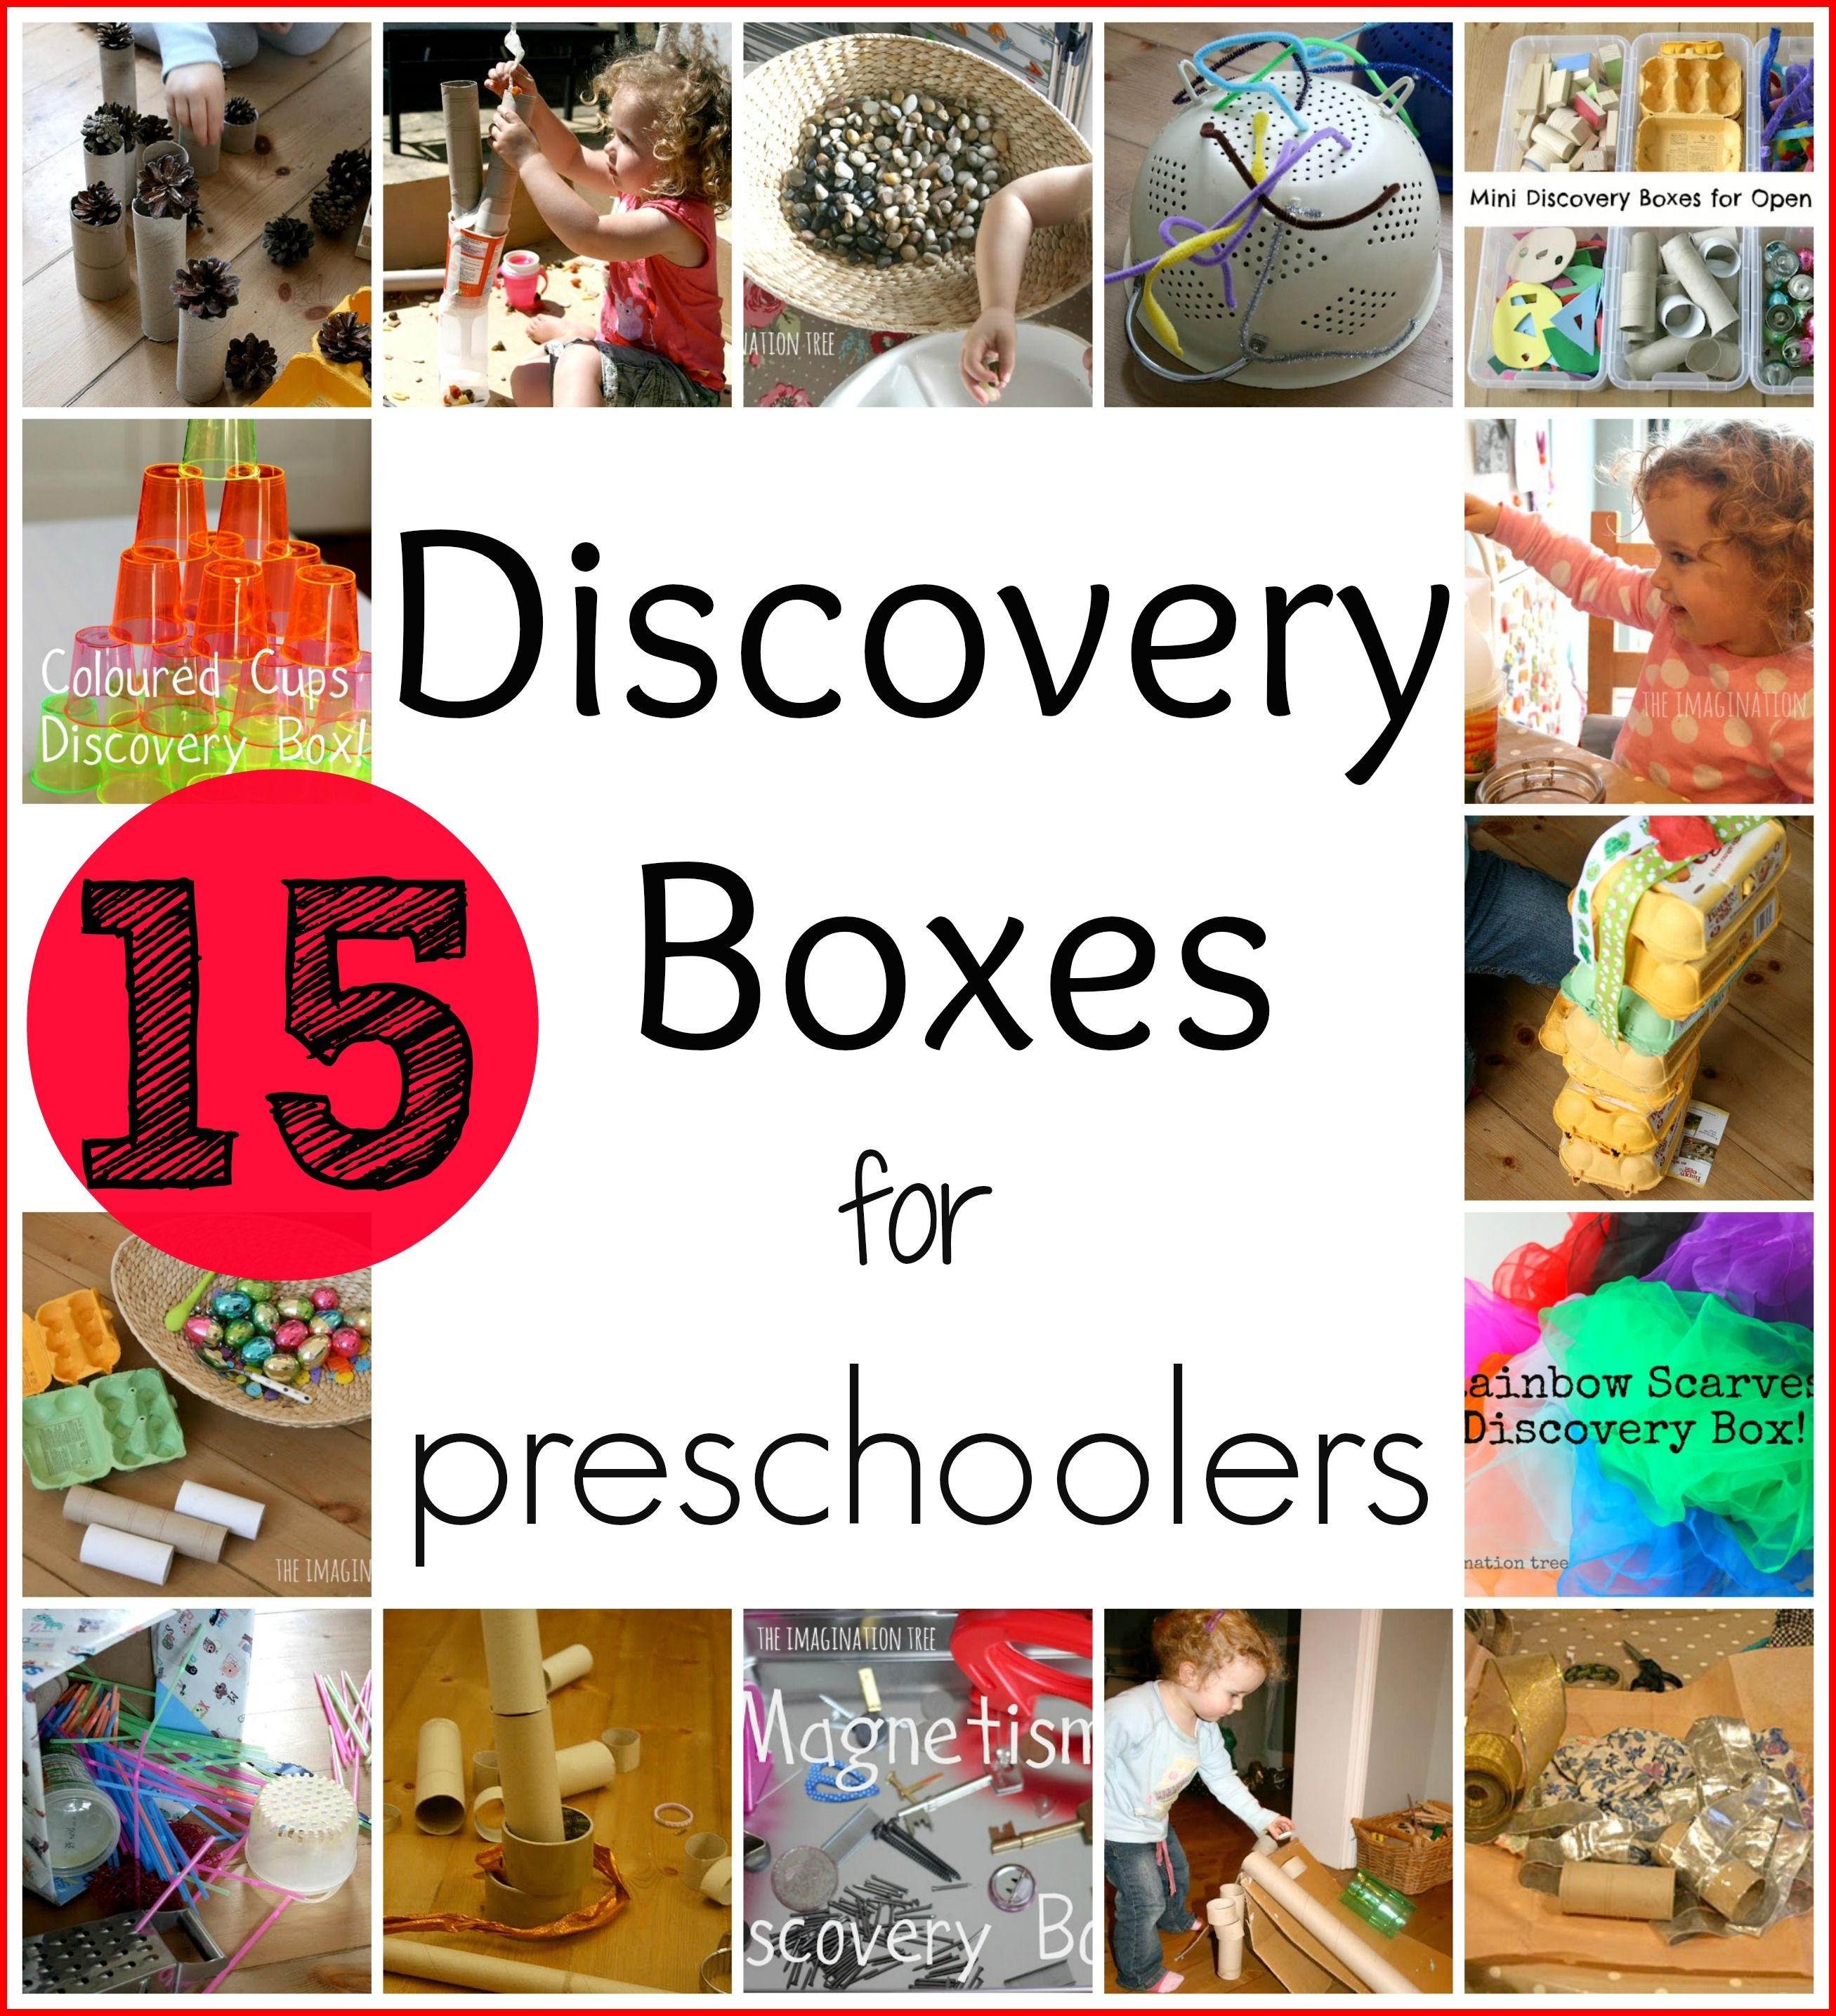 15-discovery-boxes-for-toddlers-and-preschoolers.jpg 2 614×2 871 pikseli